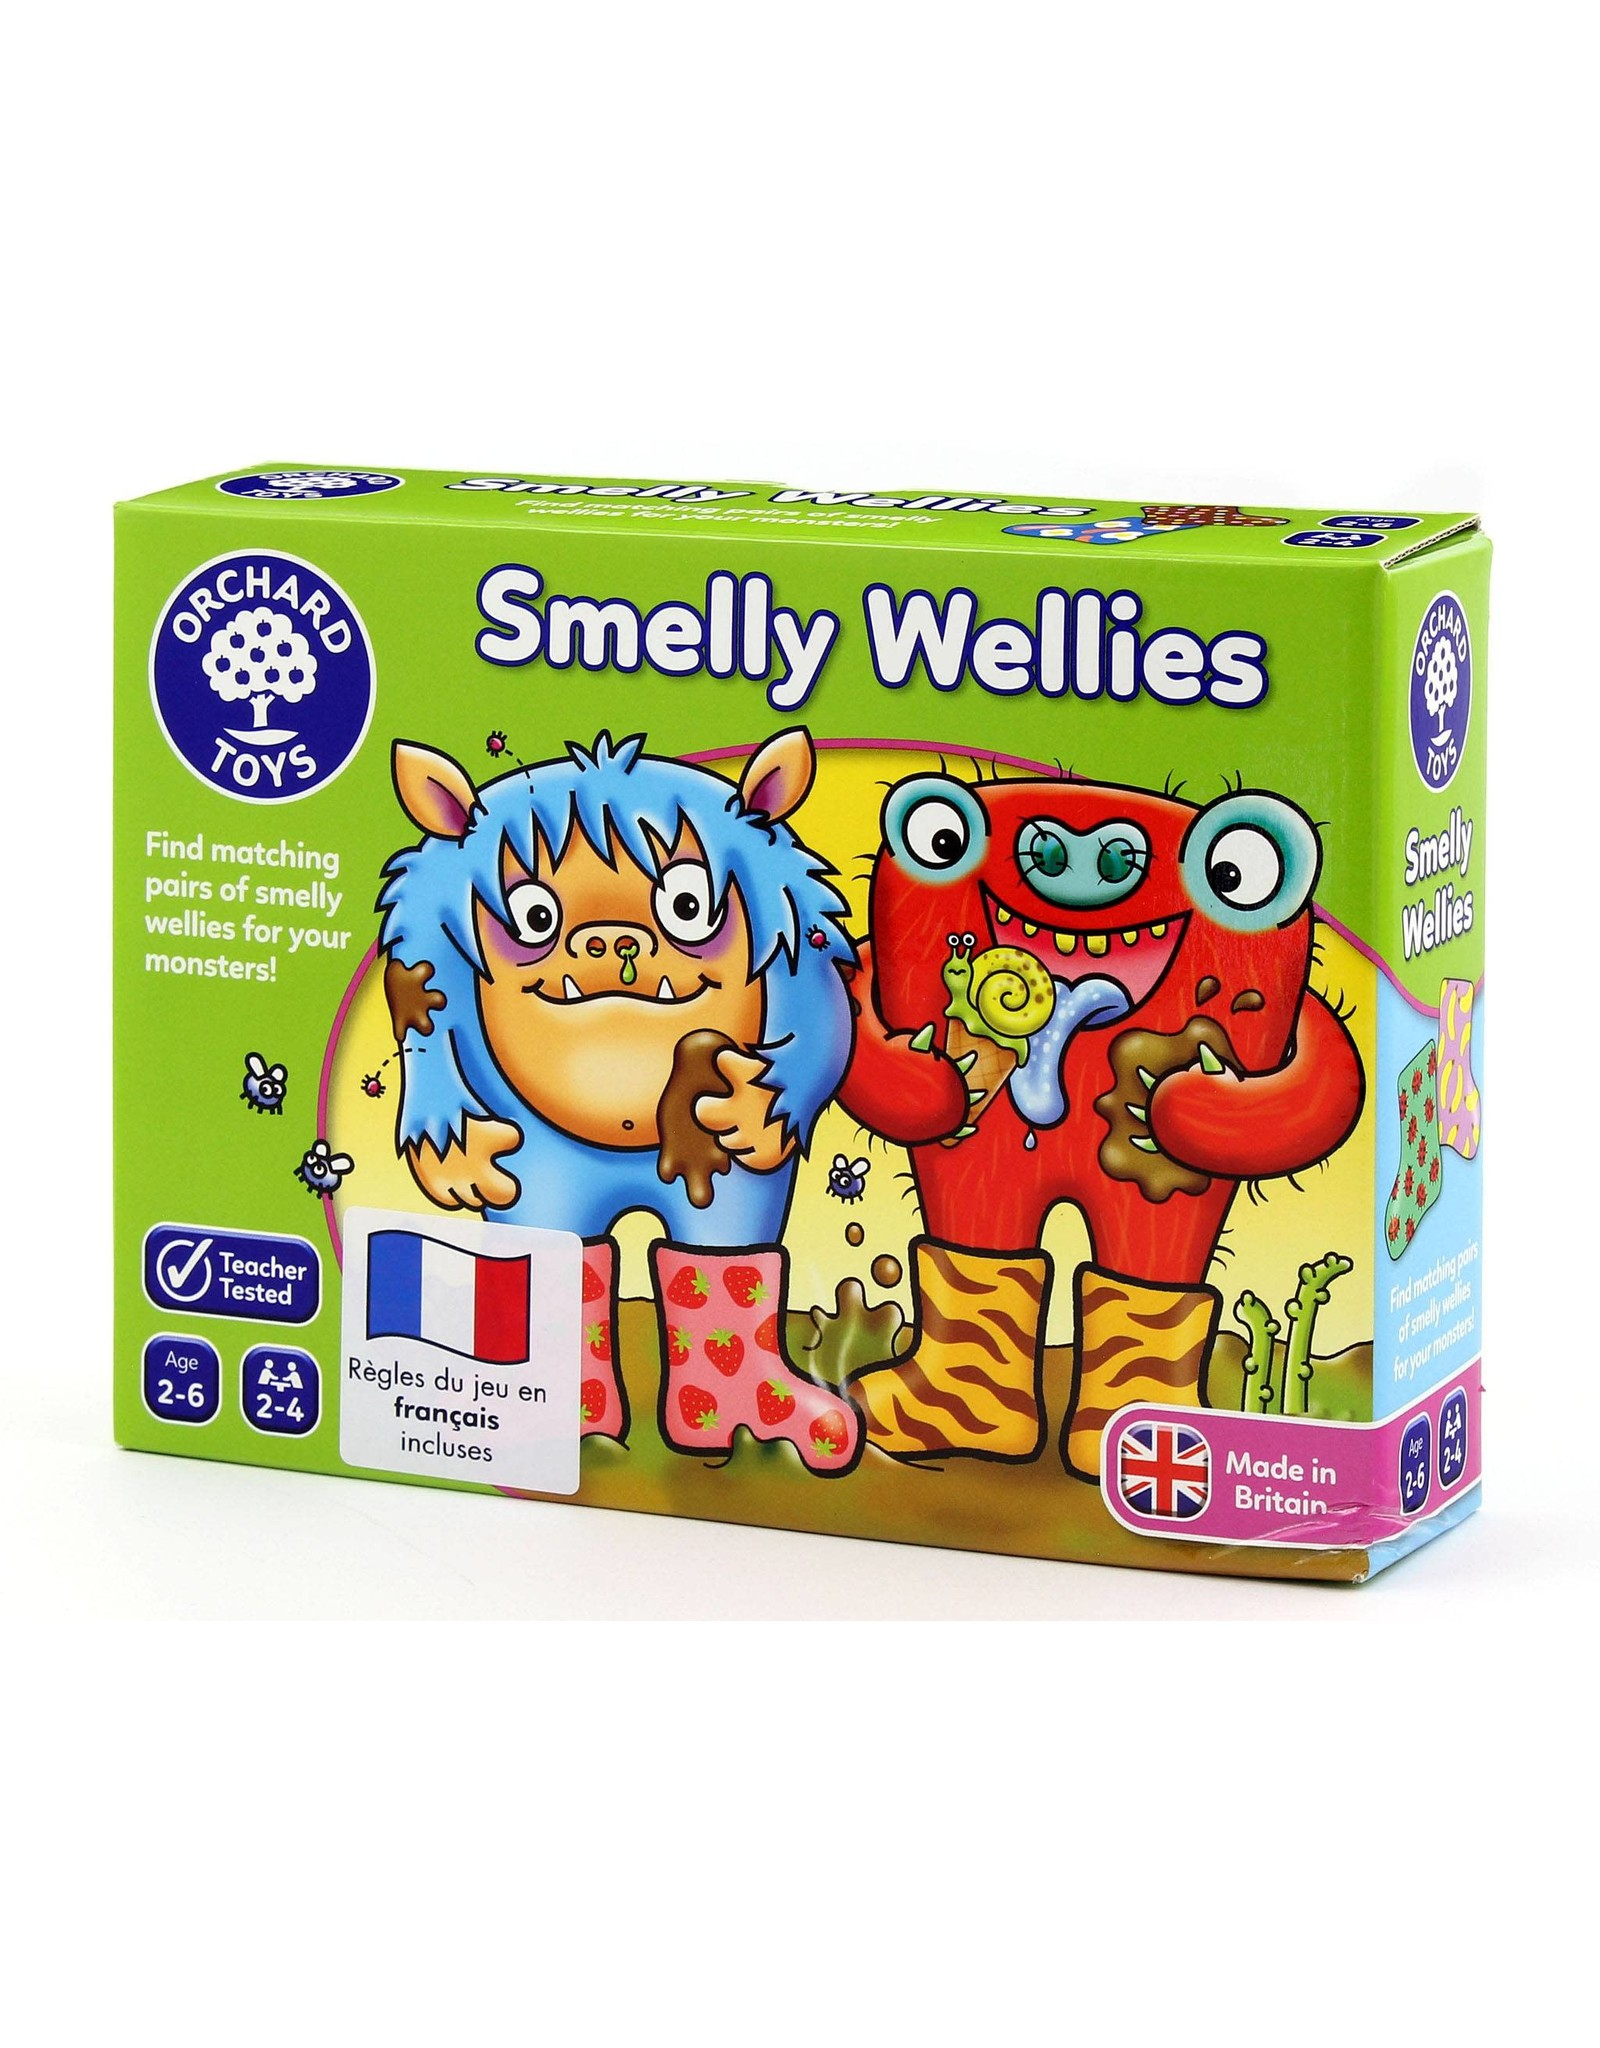 Orchard Toys Smelly Wellies (Jeu des monstres)